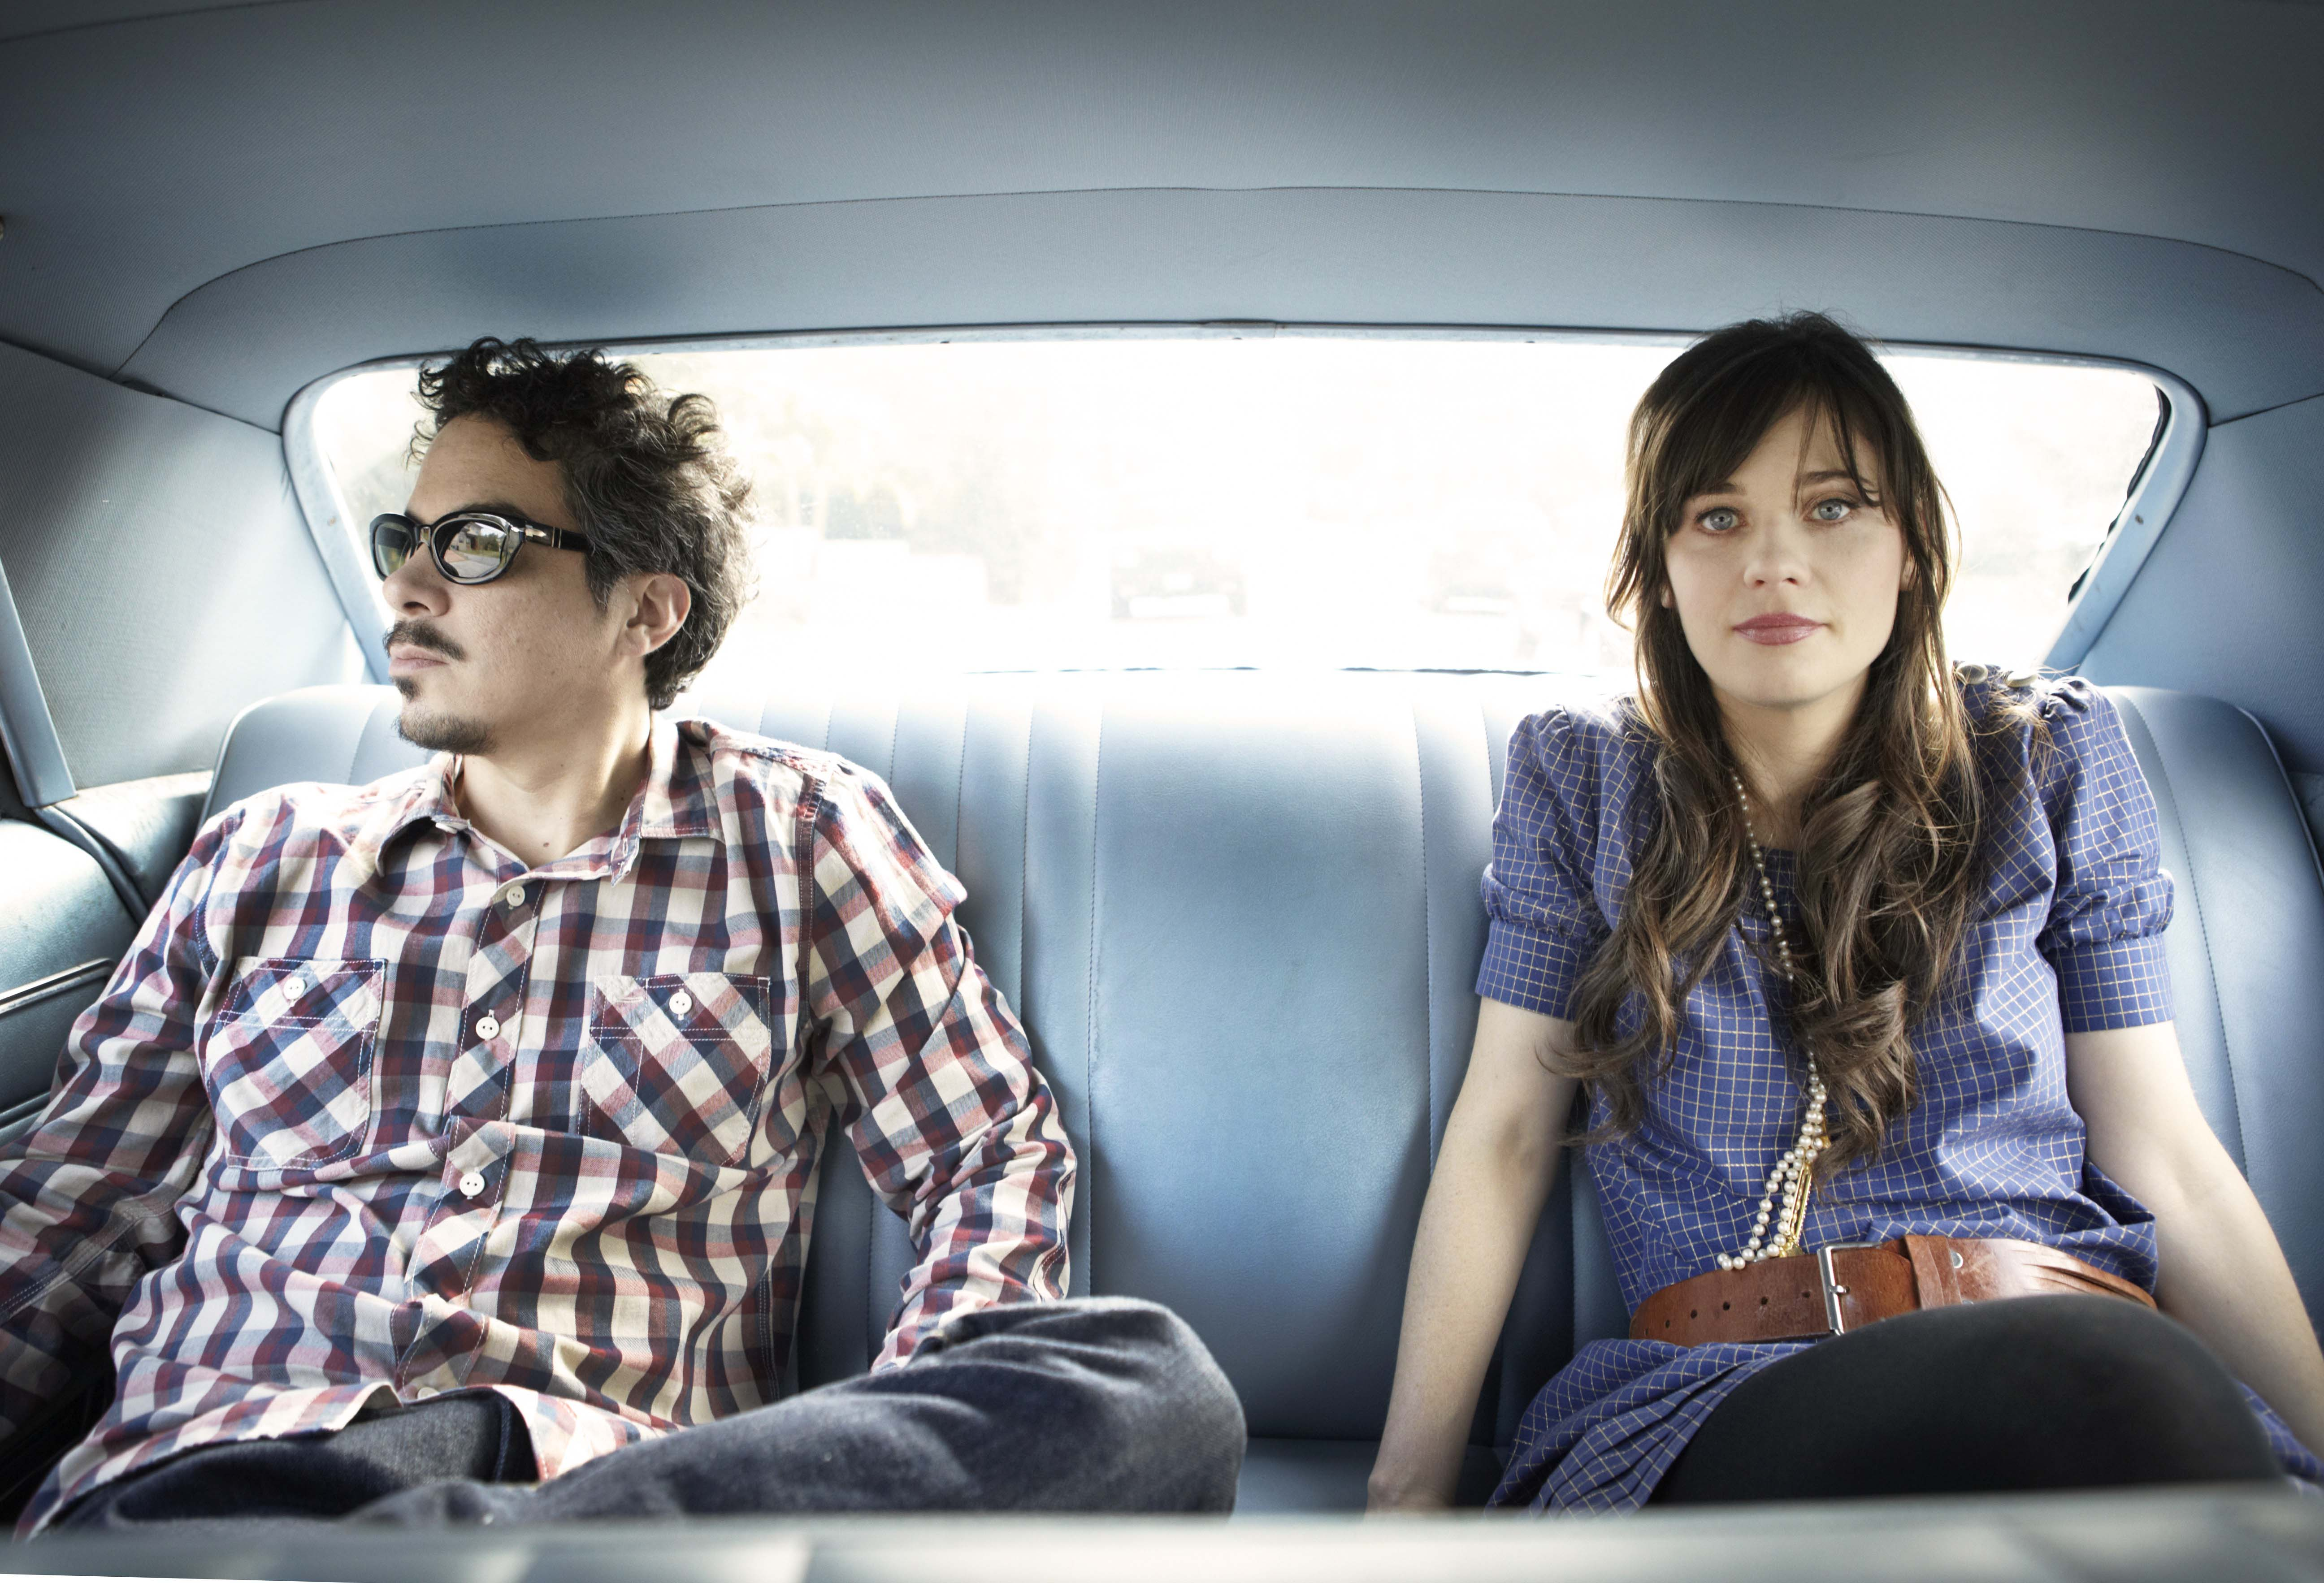 She and Him - Photo by Sam Jones